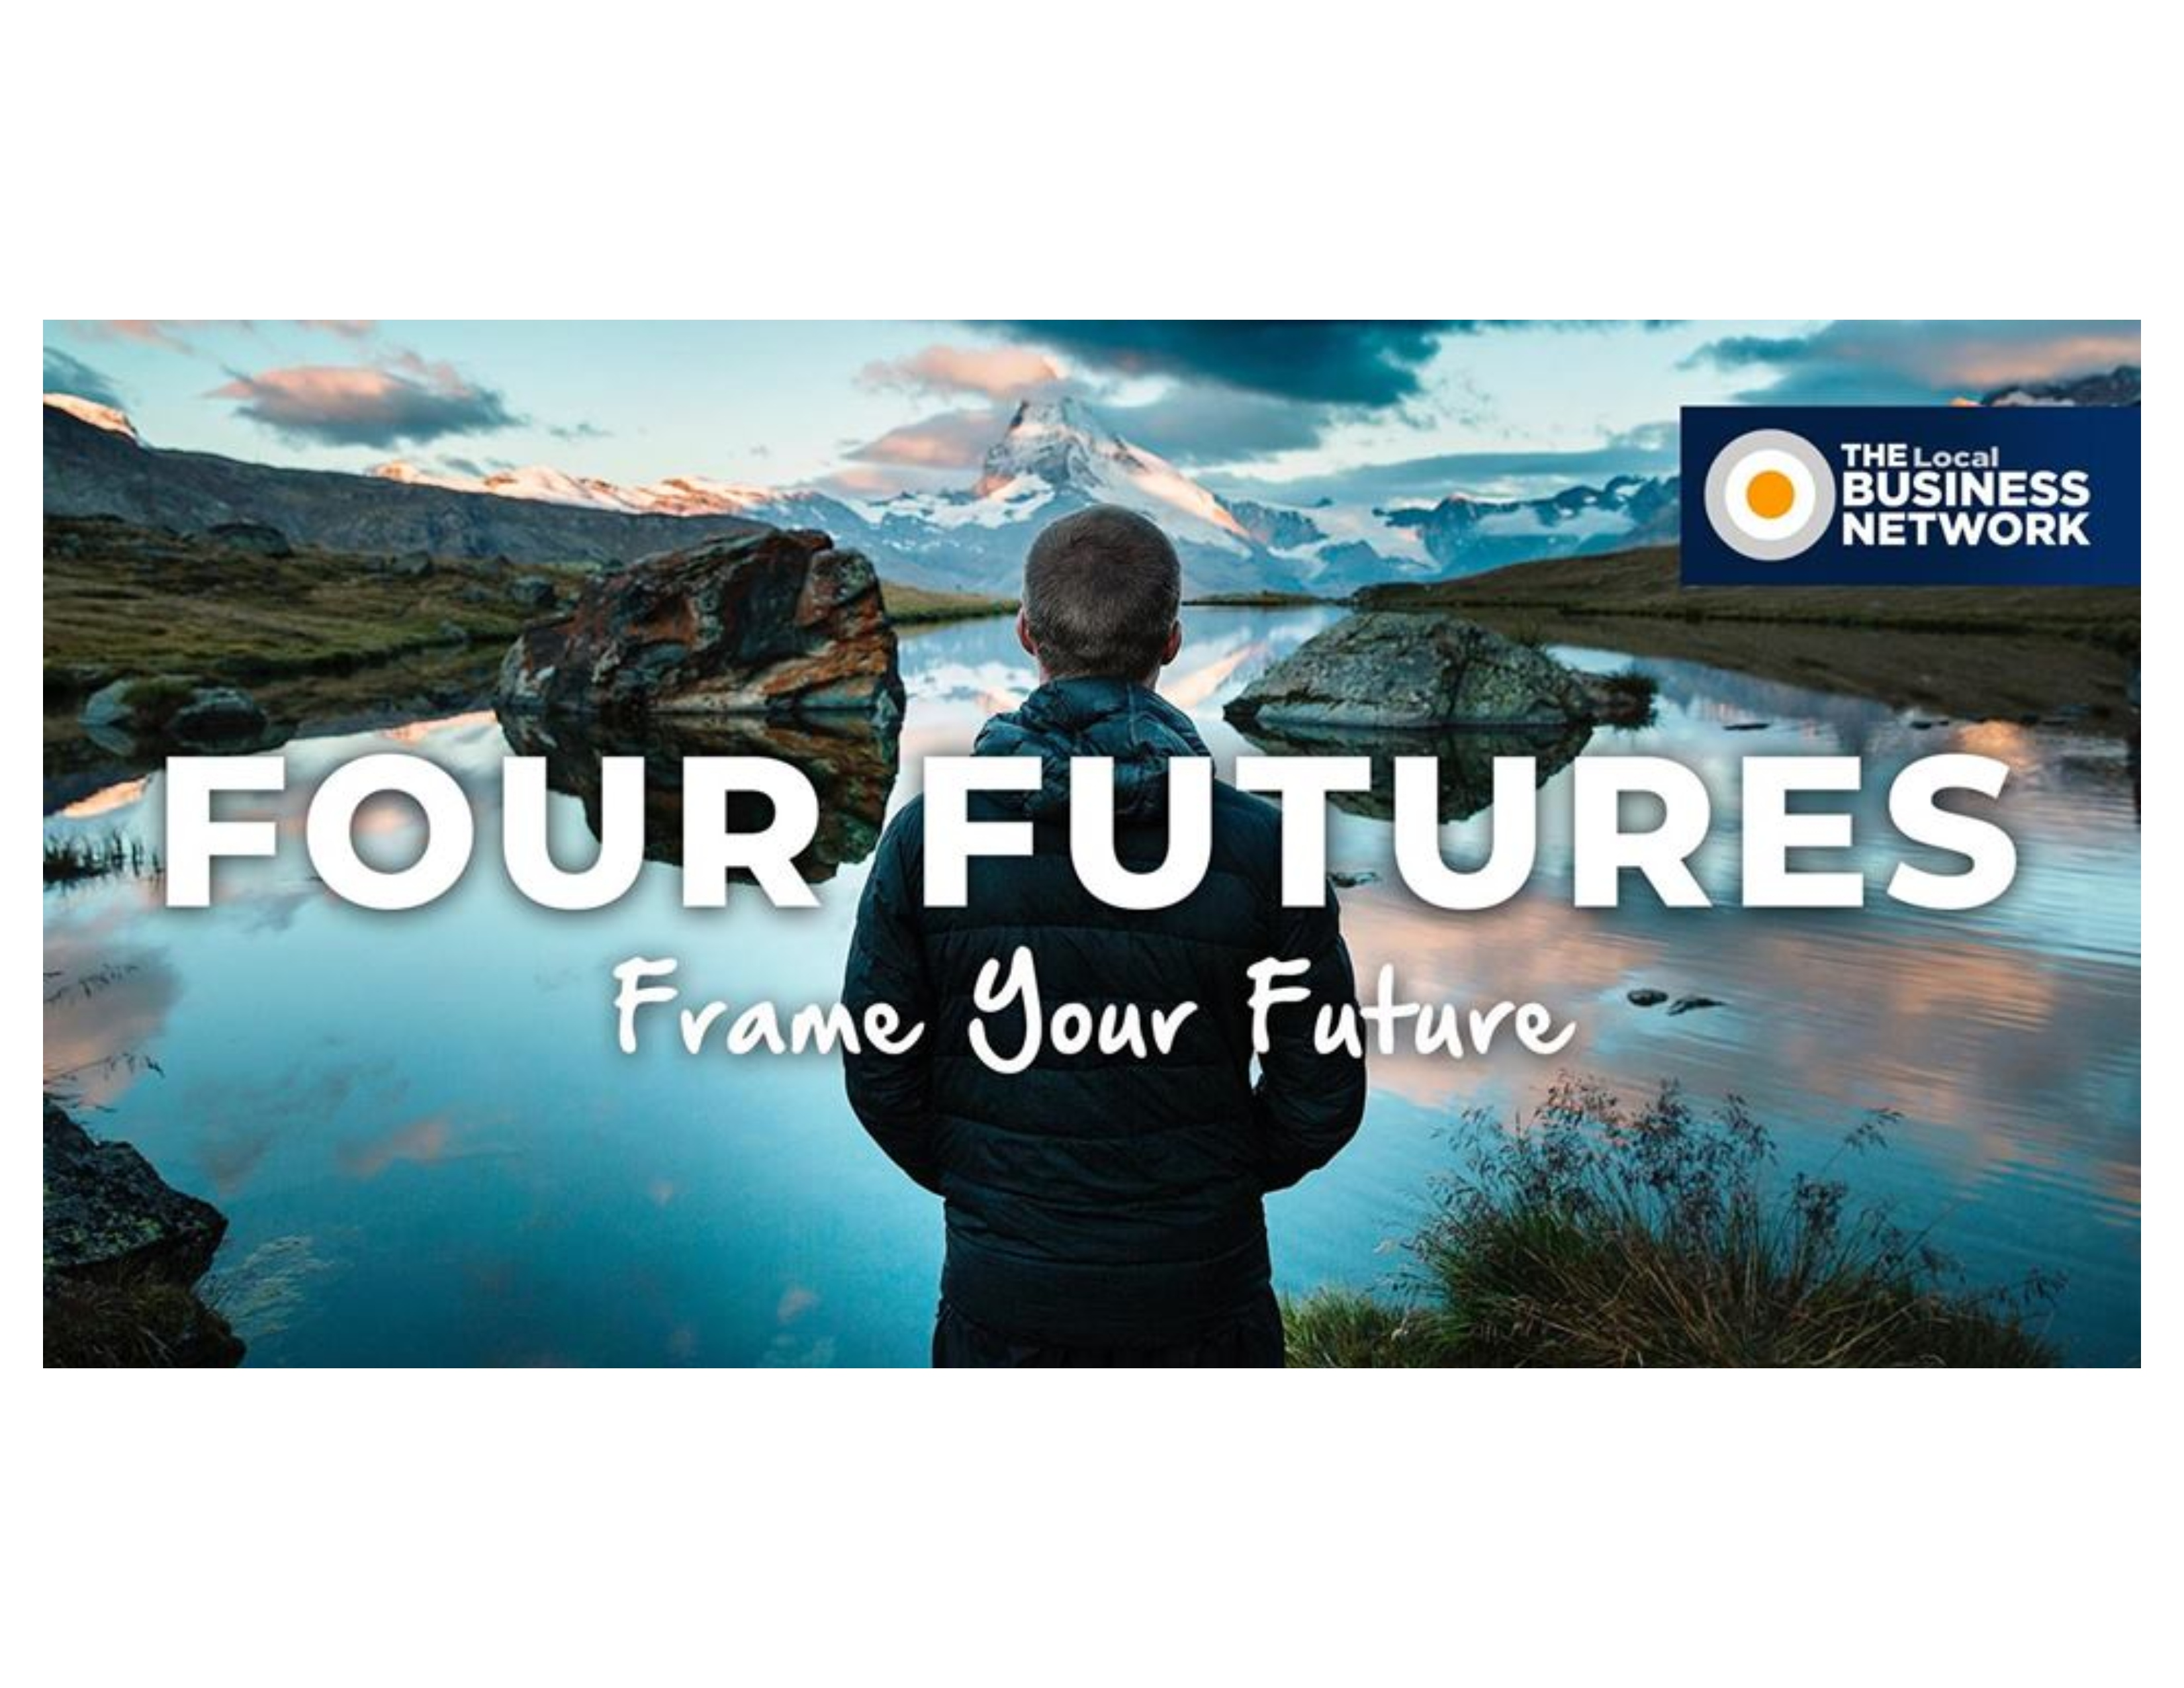 The Four Futures Of Business - April 2019 - blog post image